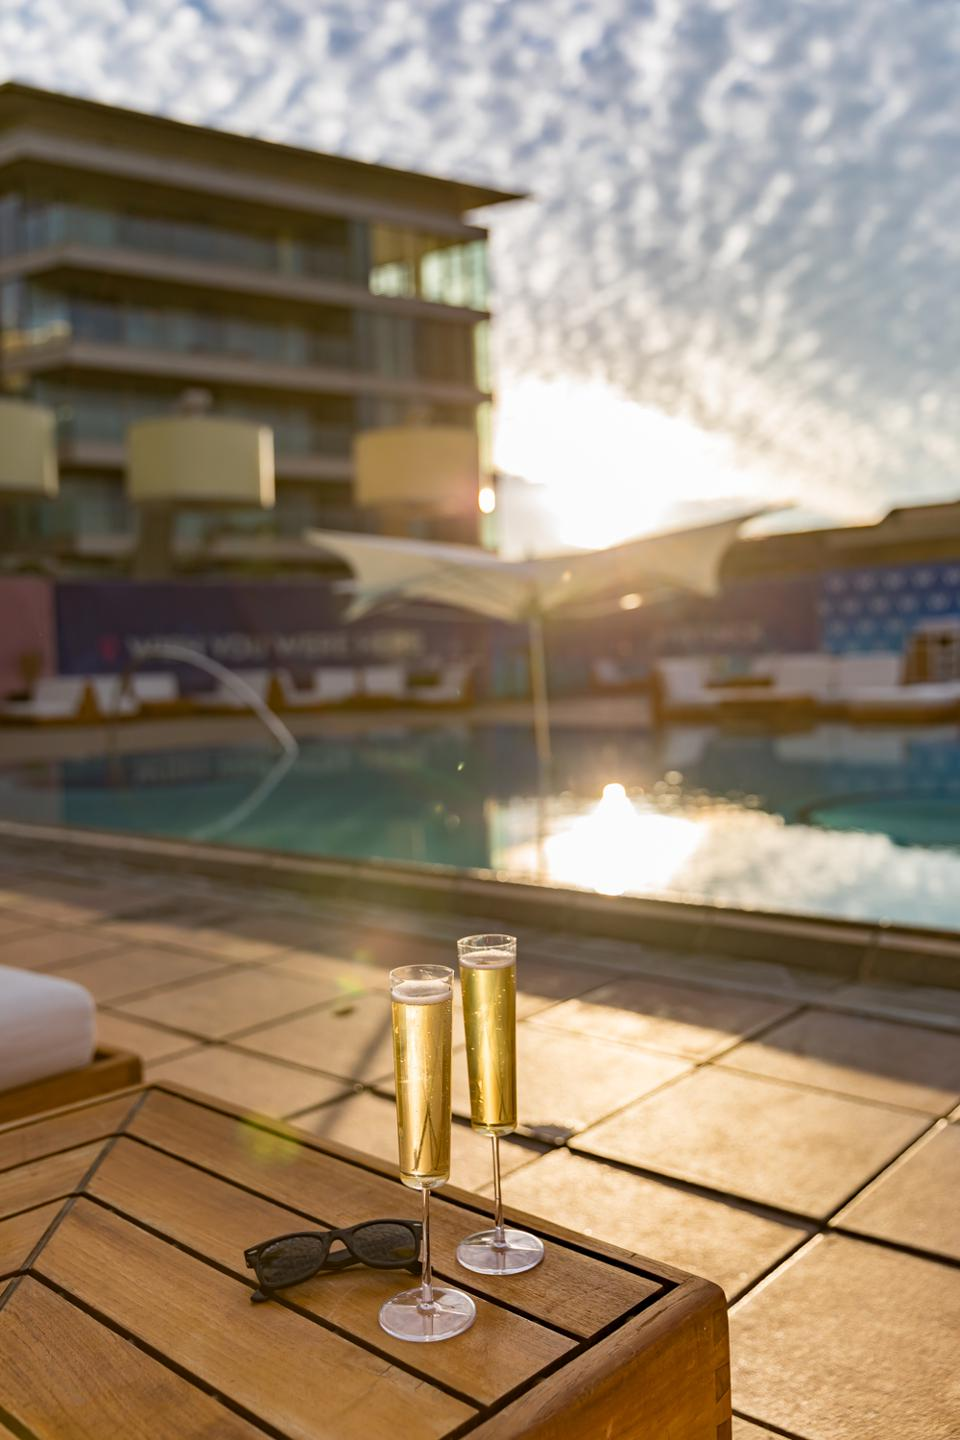 Scottsdale, AZ - View of the pool at the W Scottsdale